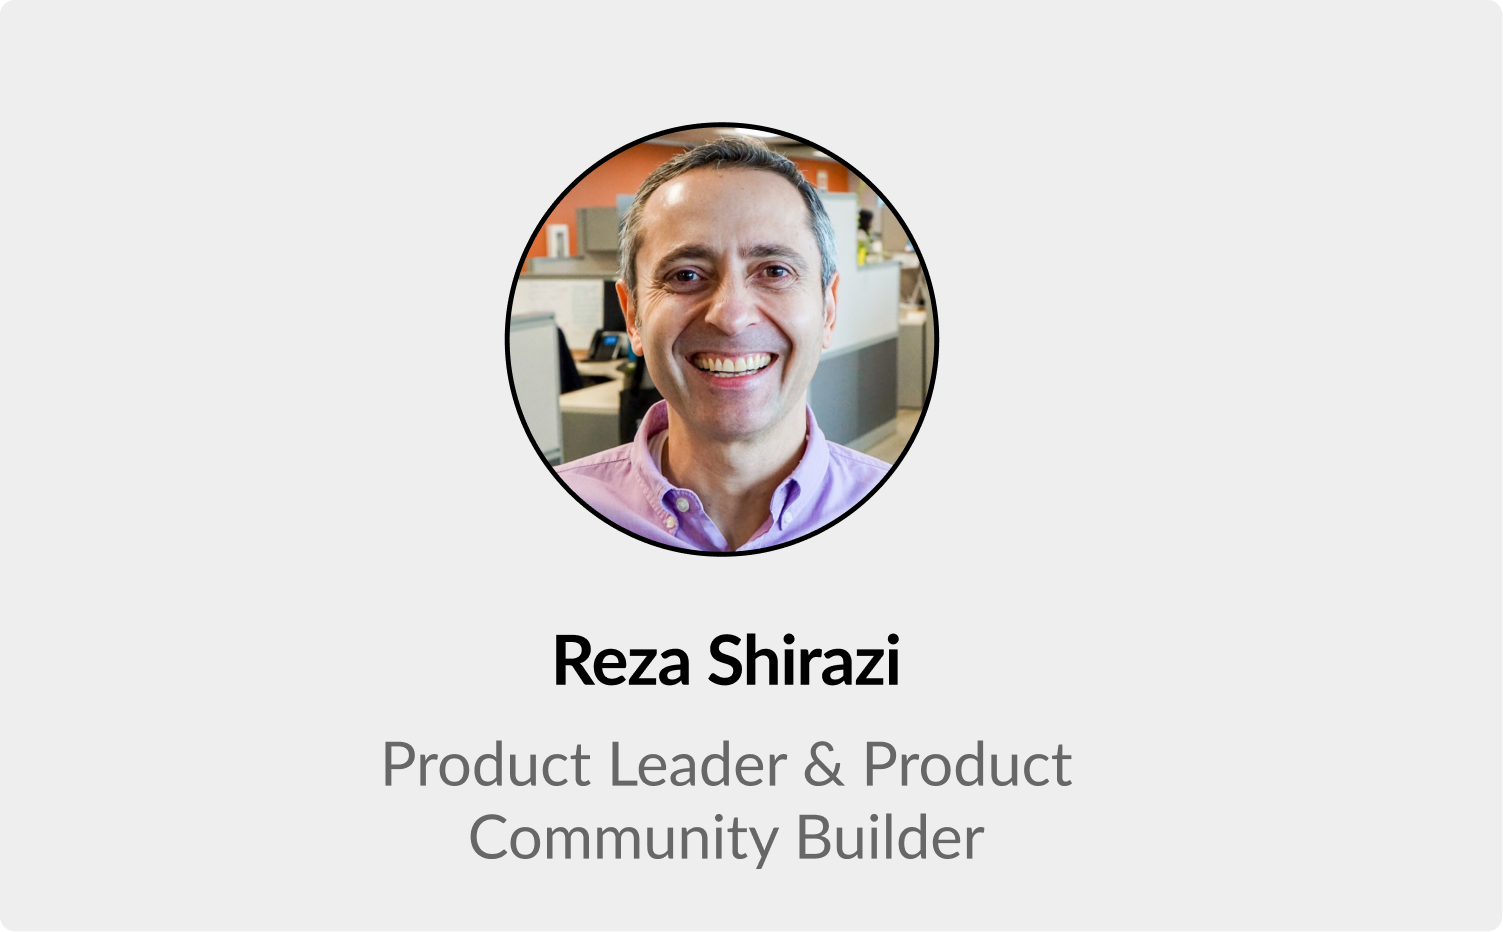 Learnings from 8 years in Product: an AMA with Reza Shirazi